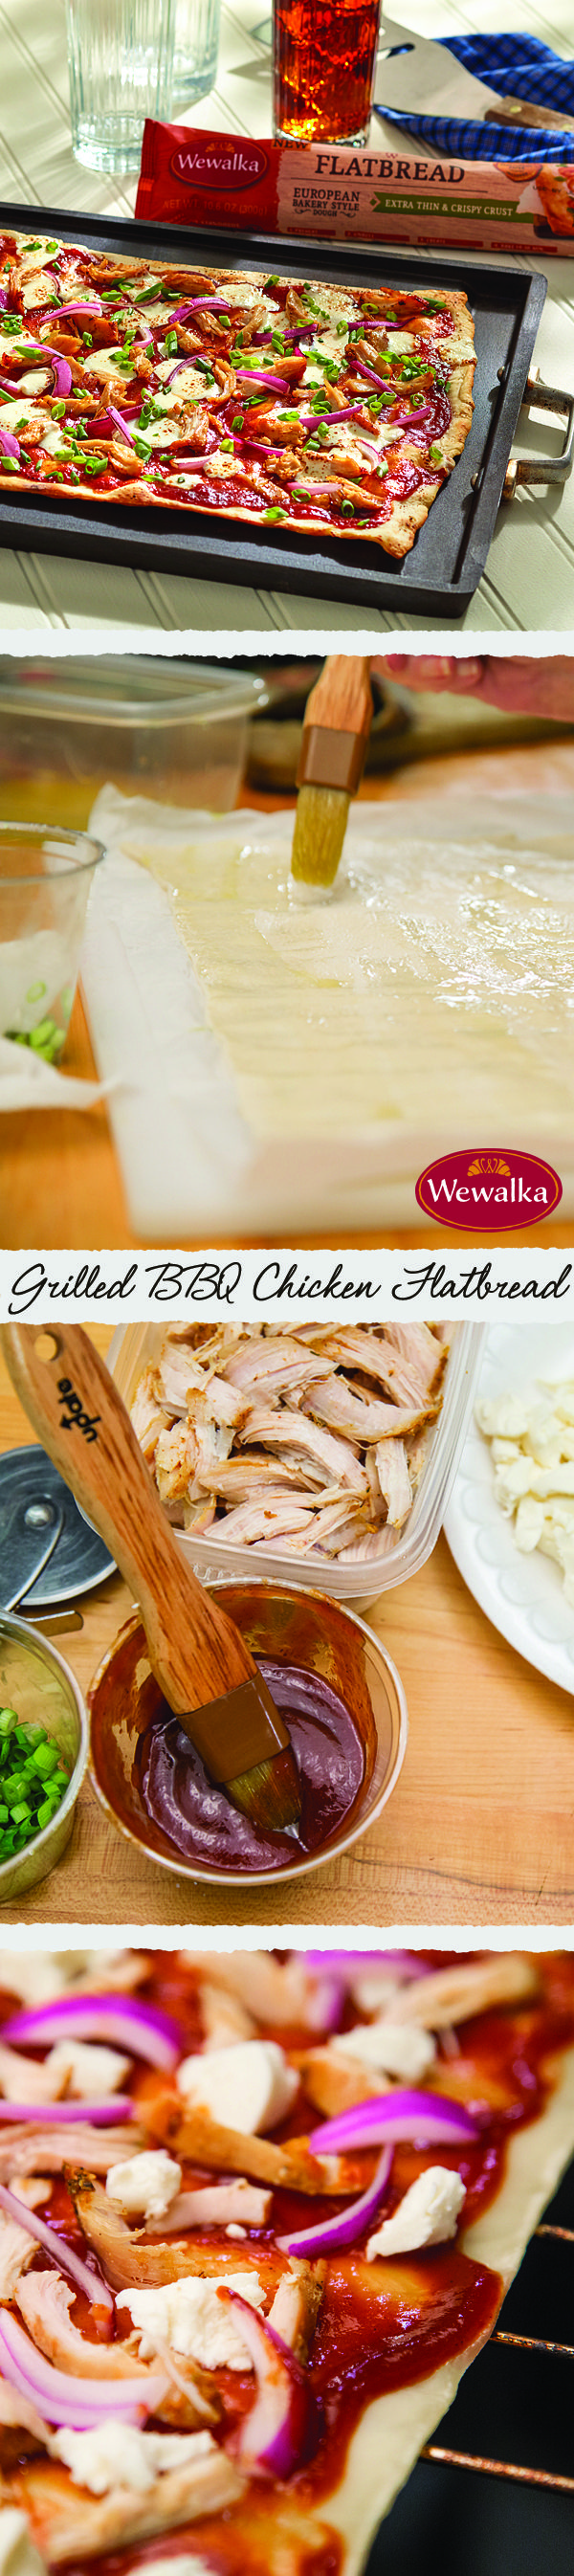 This summer, use your grill for more than brats and burgers! Wewalka's Flatbread Dough grills up extra thin and crispy and is the first flatbread sold refrigerated and ready to use in the U.S. Our Grilled BBQ Chicken Flatbread recipe will make your next barbecue better (and a side of corn salsa adds the perfect summery touch)!